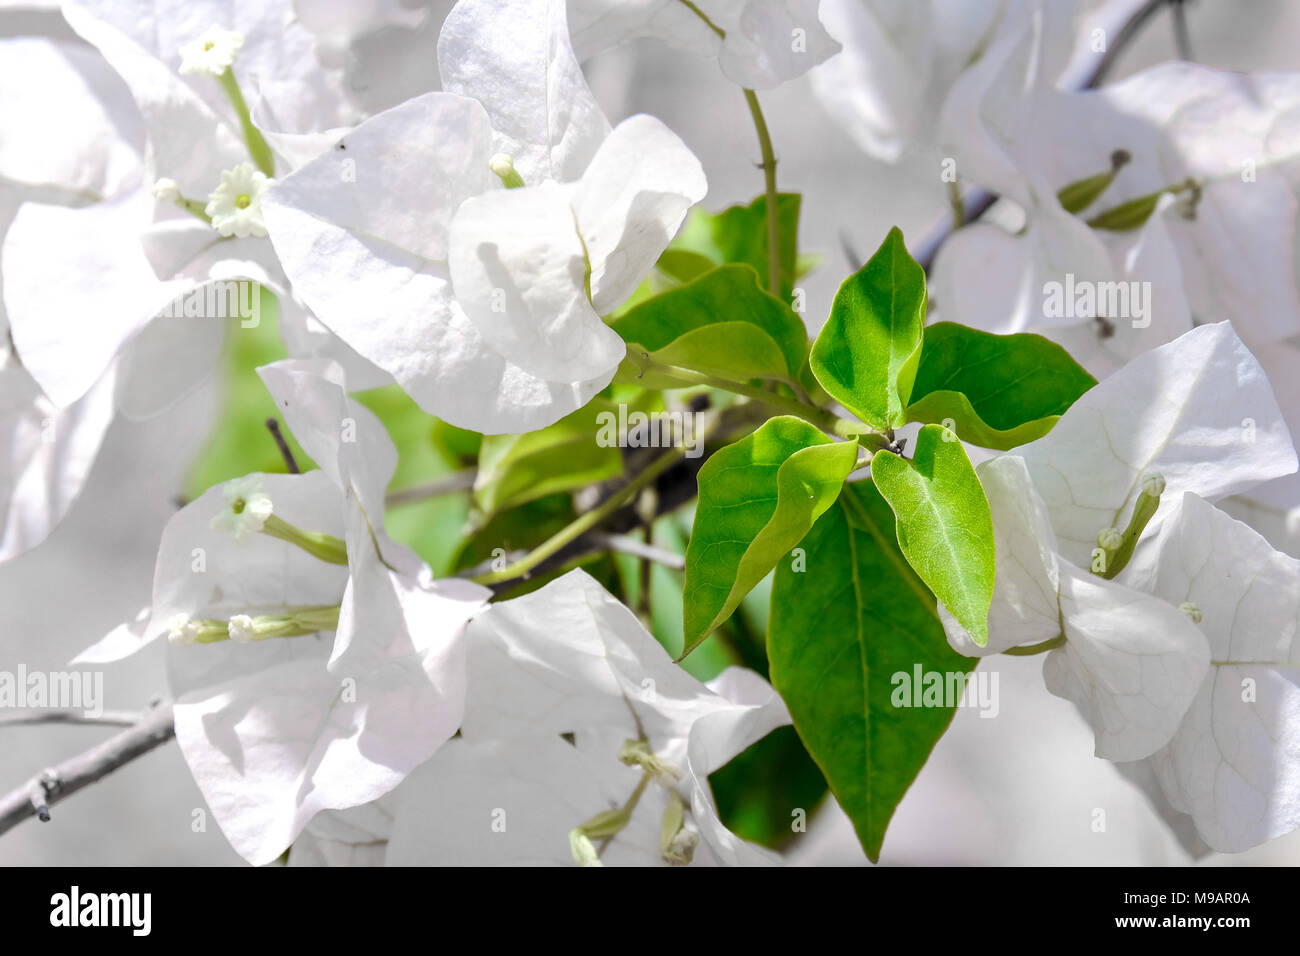 White Bougainvillea Also Known As Paper Flower With Green Leaves In